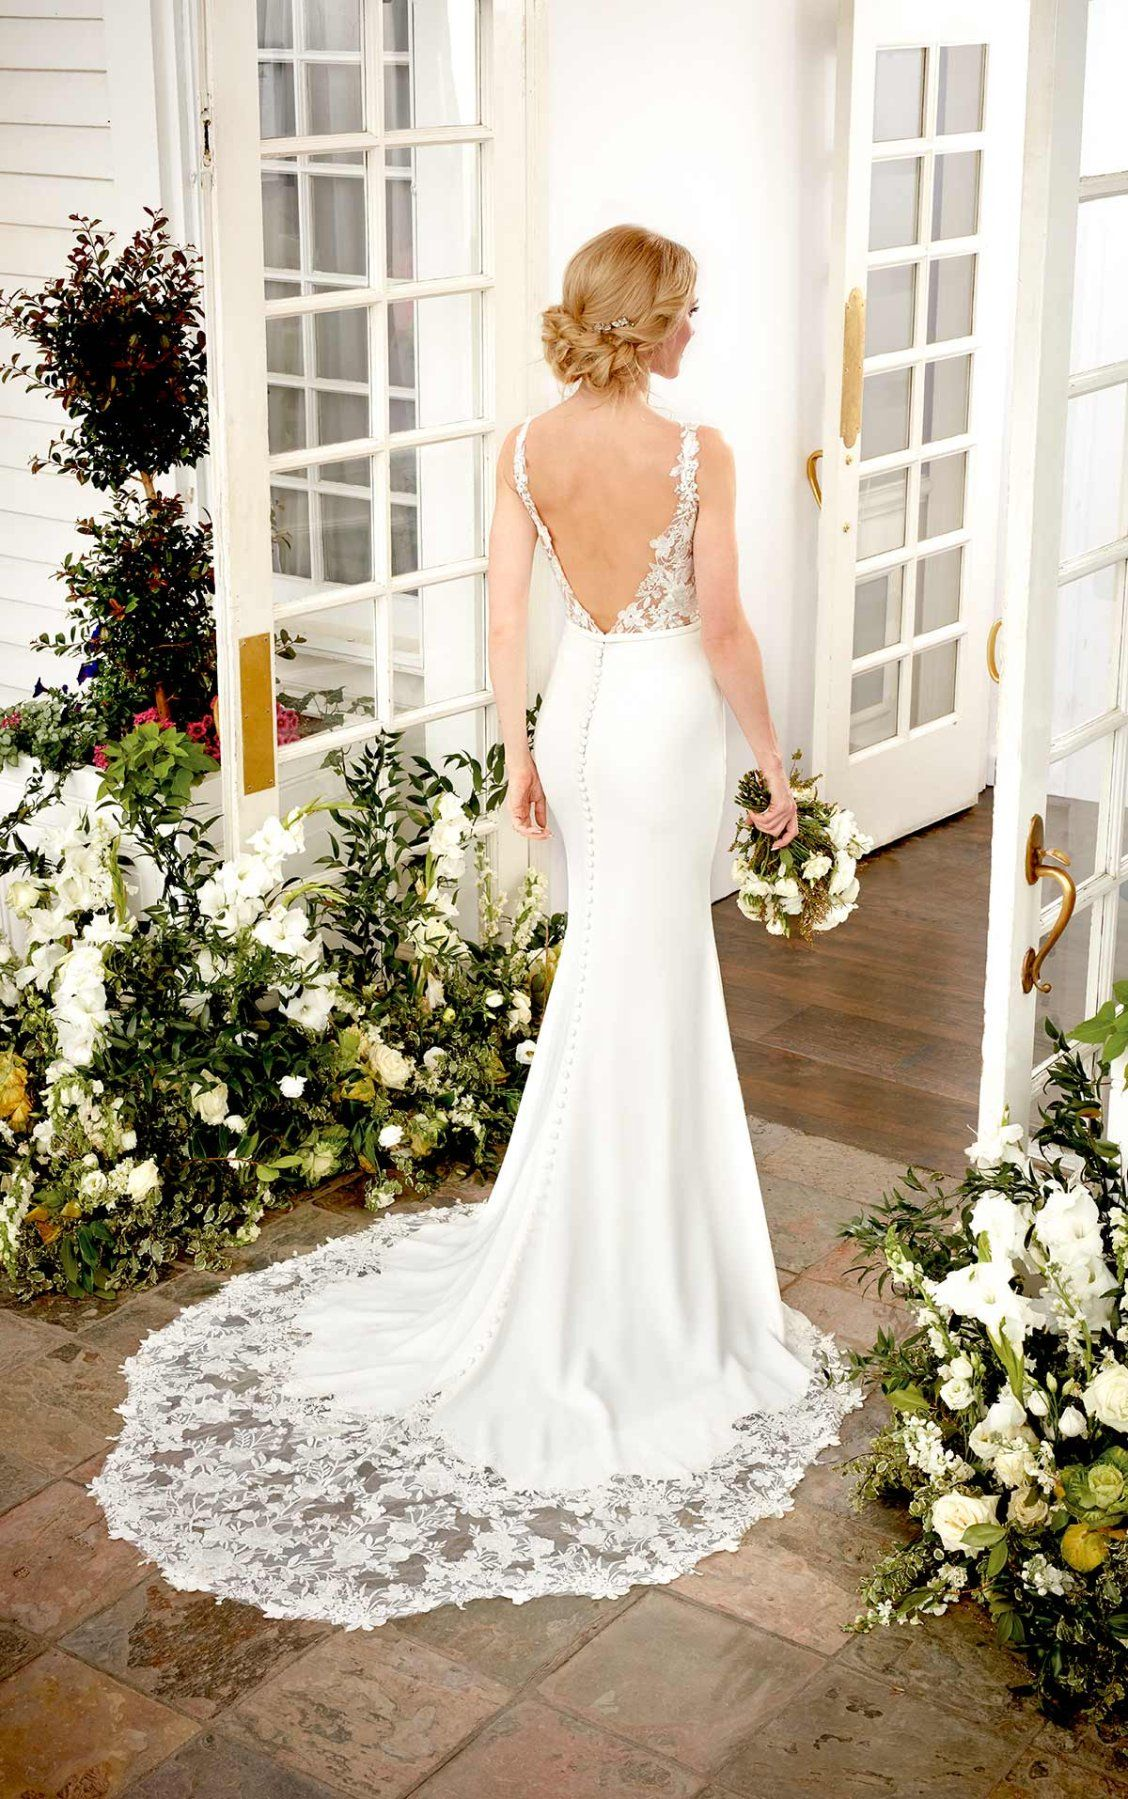 Simple Wedding Dress With Sheer Lace Sides Martina Liana Glamourous Wedding Dress Martina Liana Wedding Dress Wedding Dresses Perth [ 1799 x 1128 Pixel ]